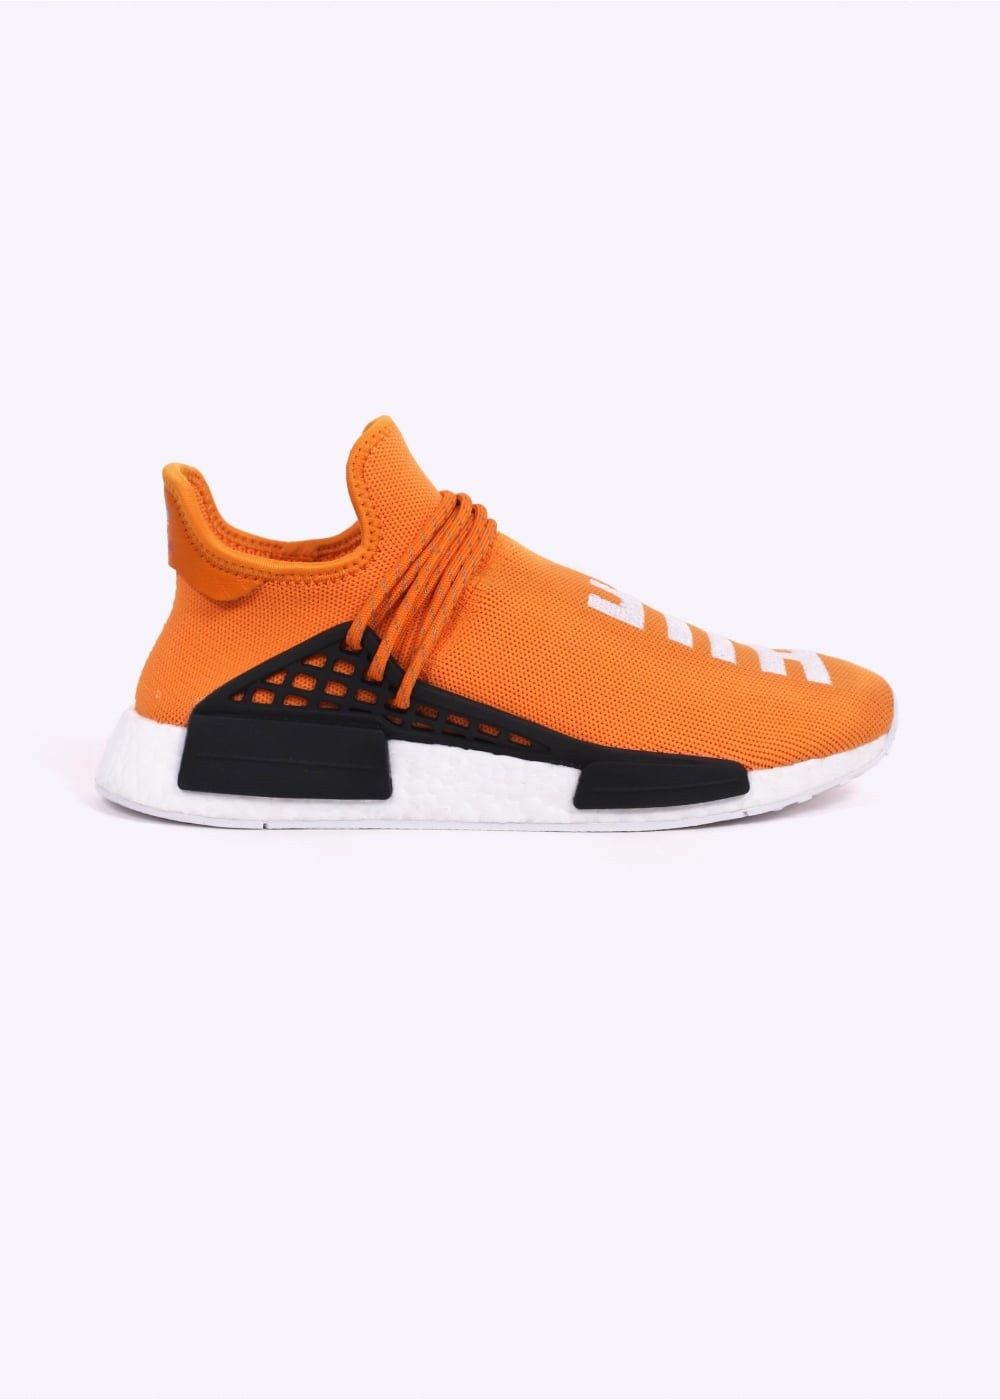 best service 07f4b 03223 adidas Originals Footwear x PW Human Race NMD - Yellow